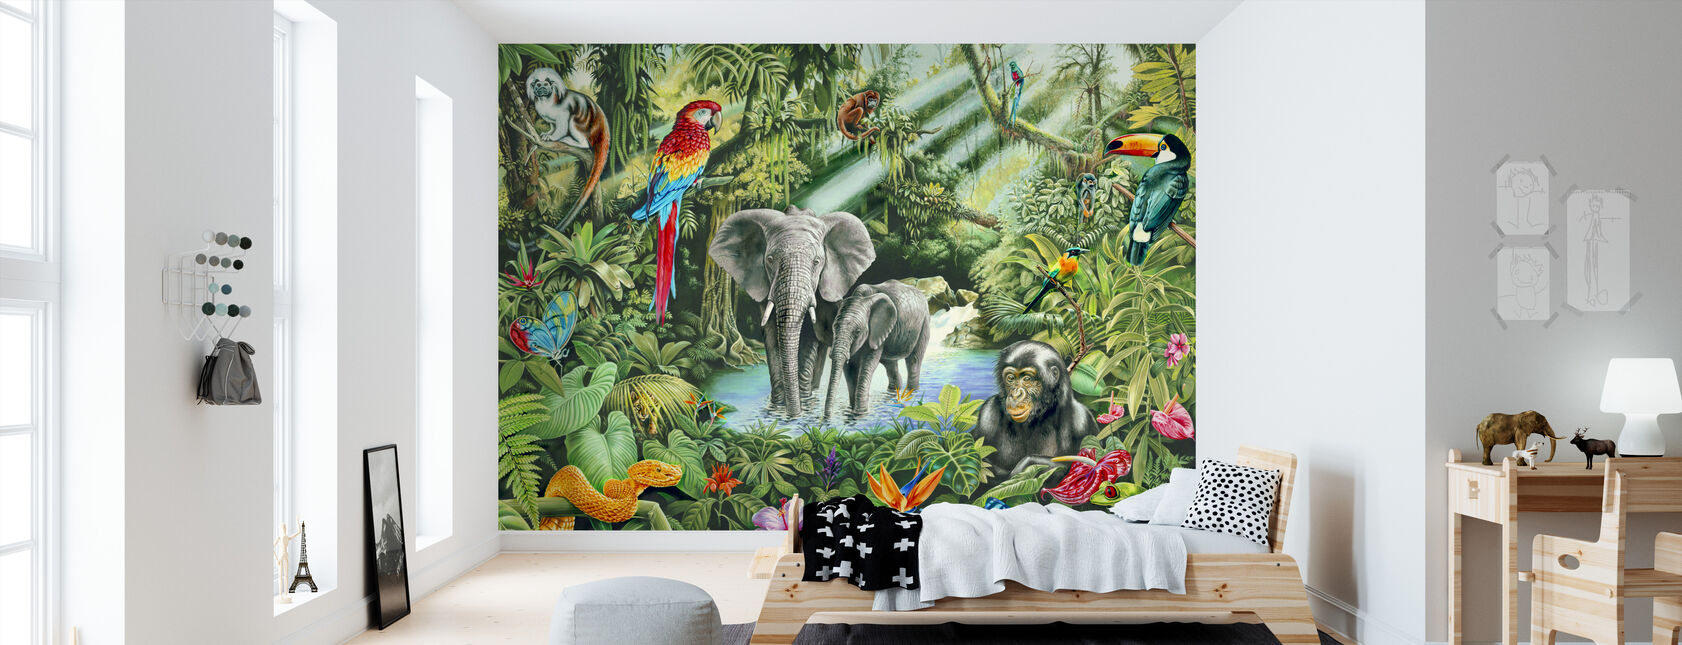 Jungle - Behang - Kinderkamer